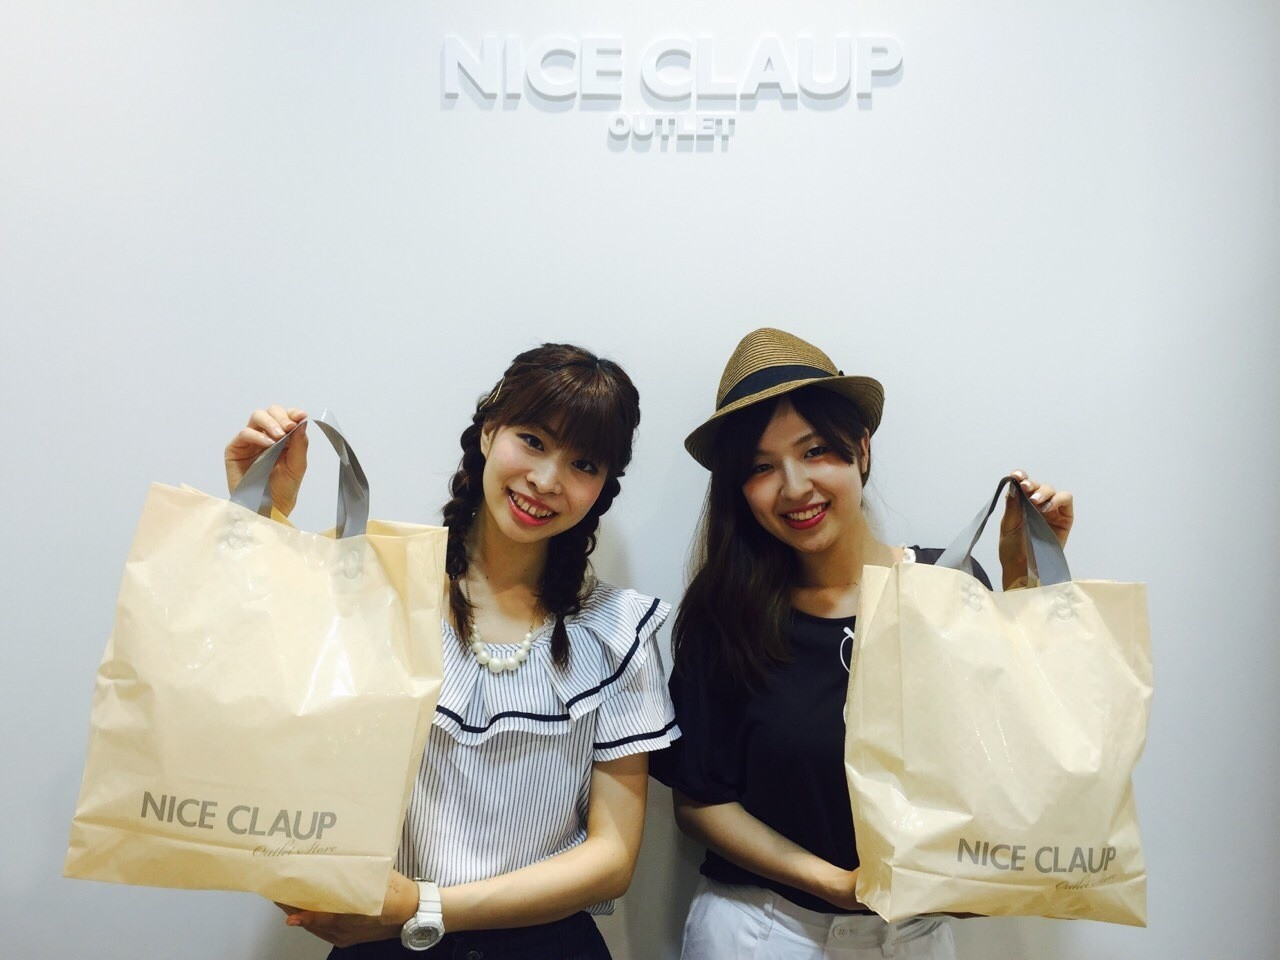 NICE CLAUP OUTLET(ナイスクラップアウトレット) 仙台港店 のアルバイト情報